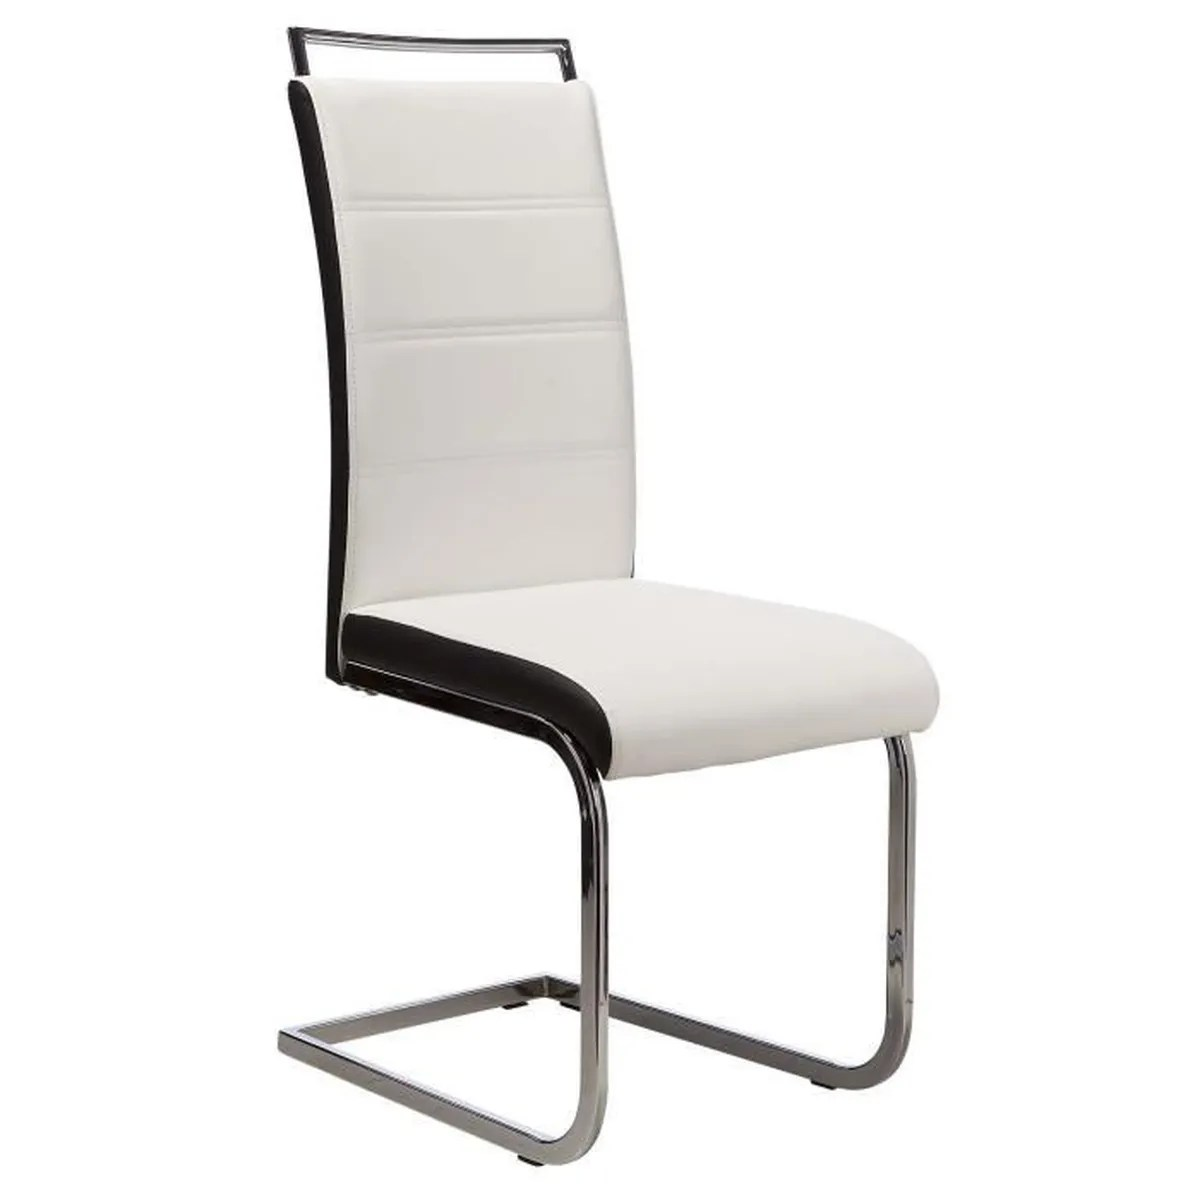 Chaise Salon Blanche Dylan Lot De 4 Chaises Salon Blanc Noir